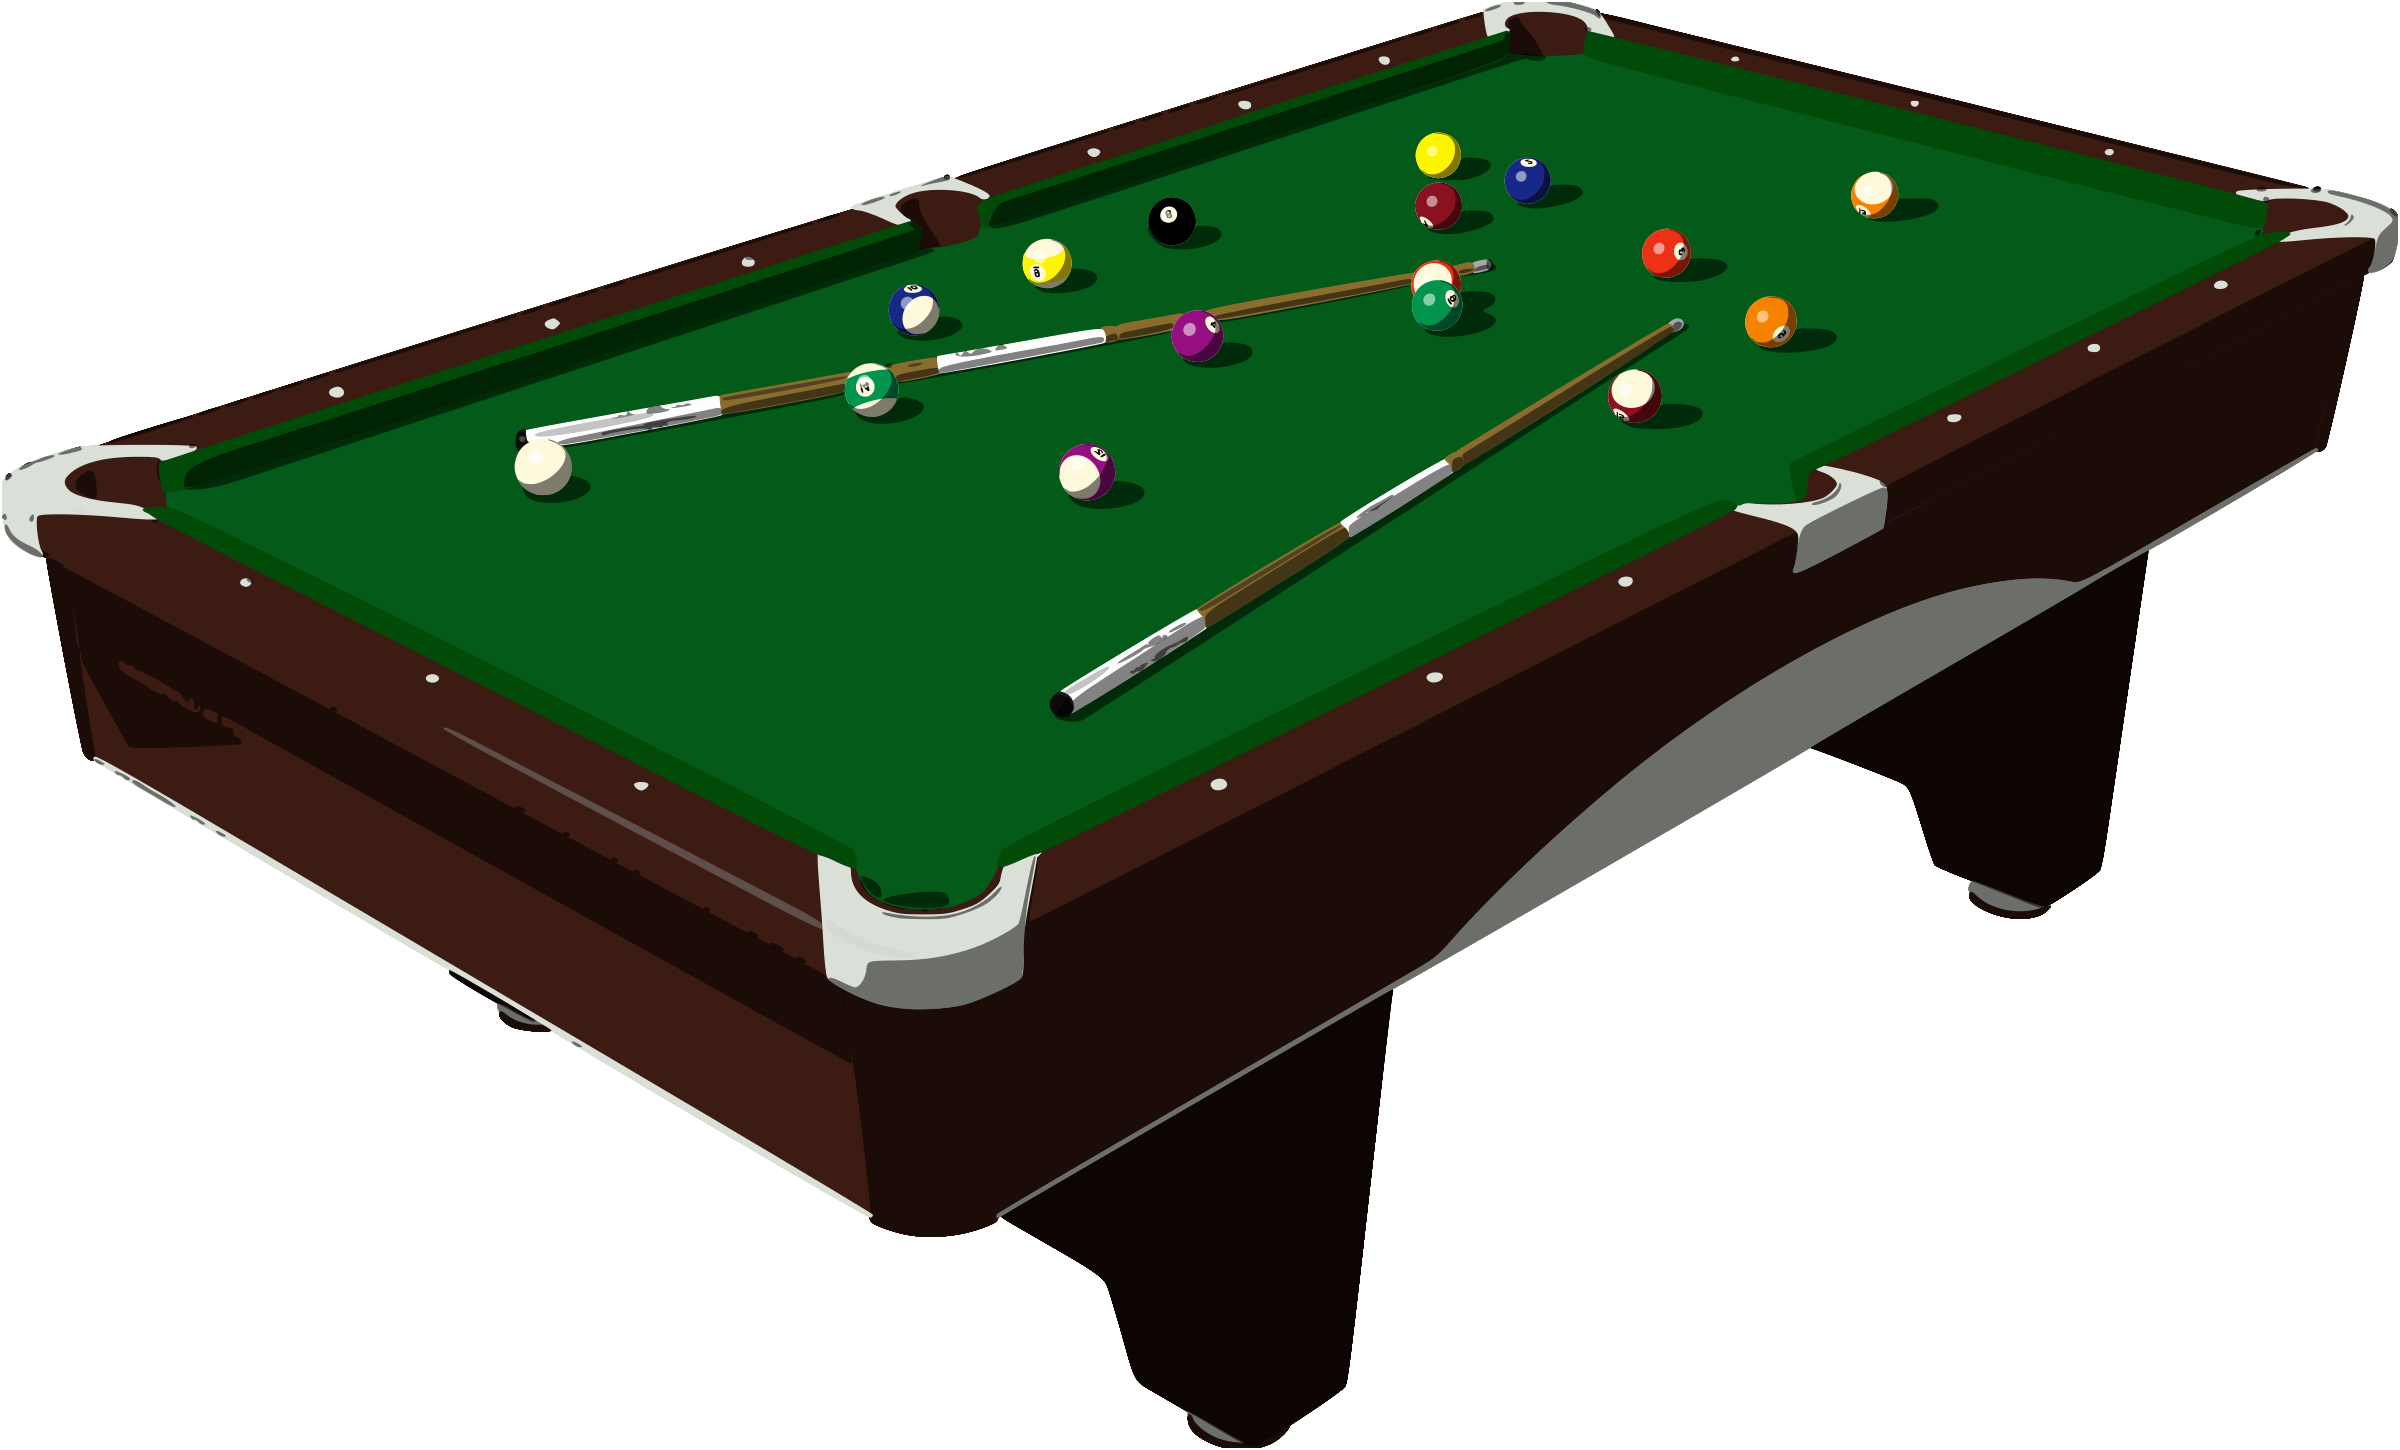 Pool table clipart free download best pool table clipart - Pool table images ...